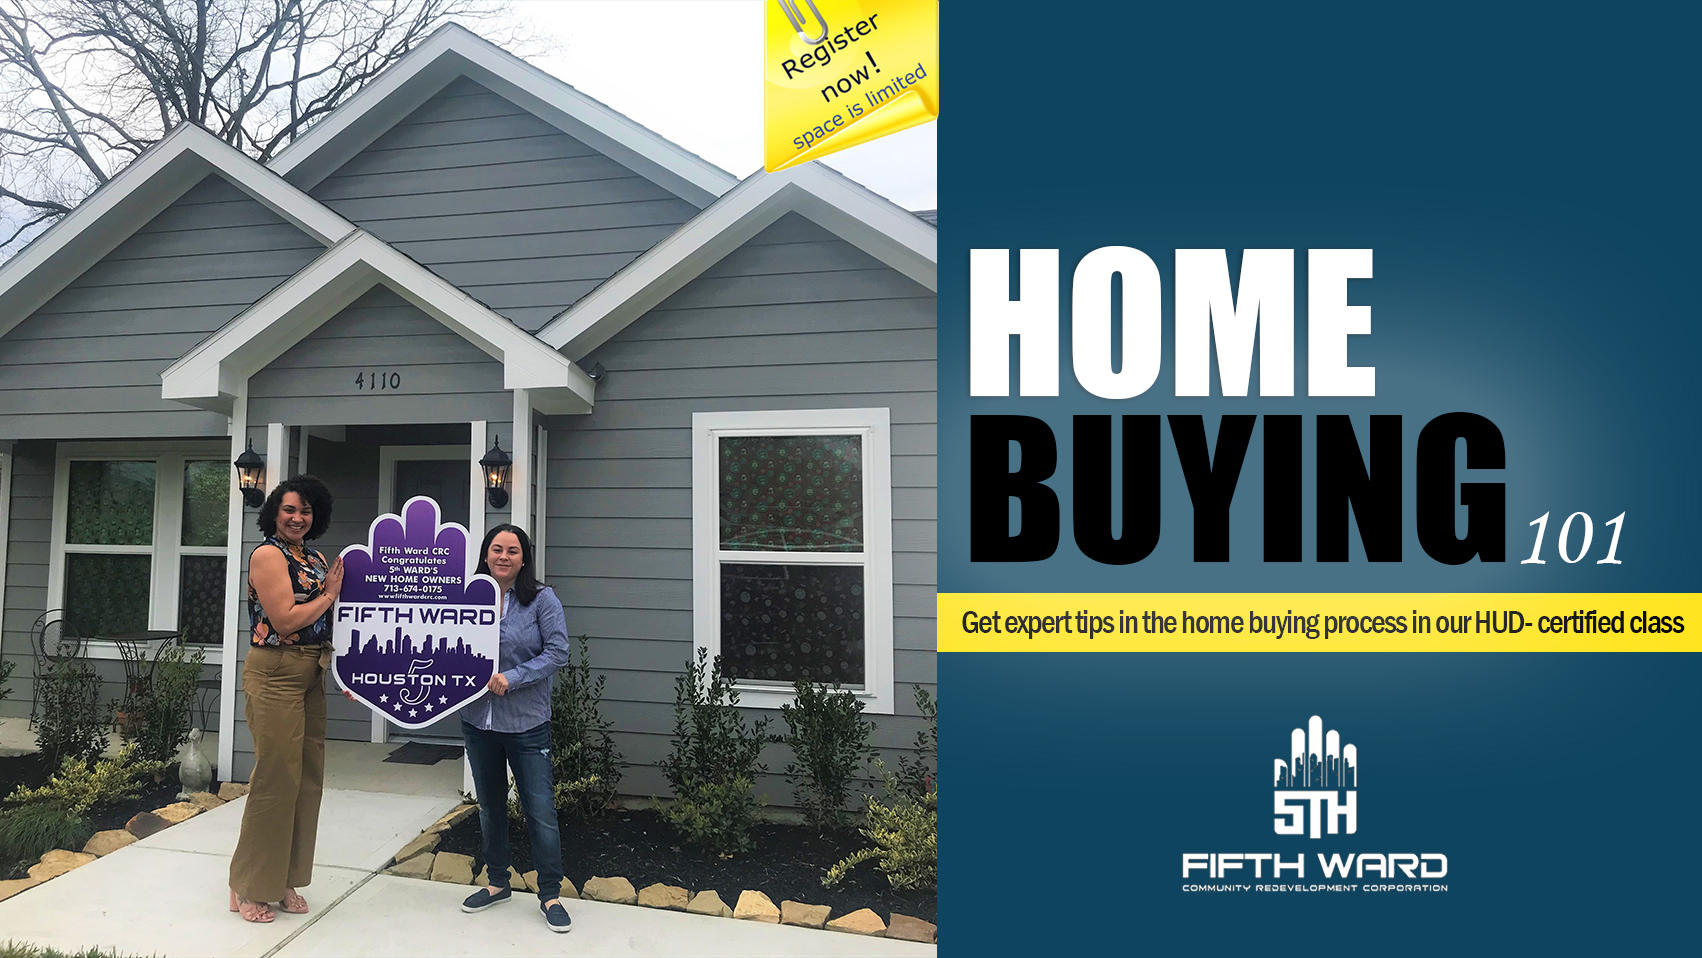 Home Buying 101 Facebook Cover_Client Im